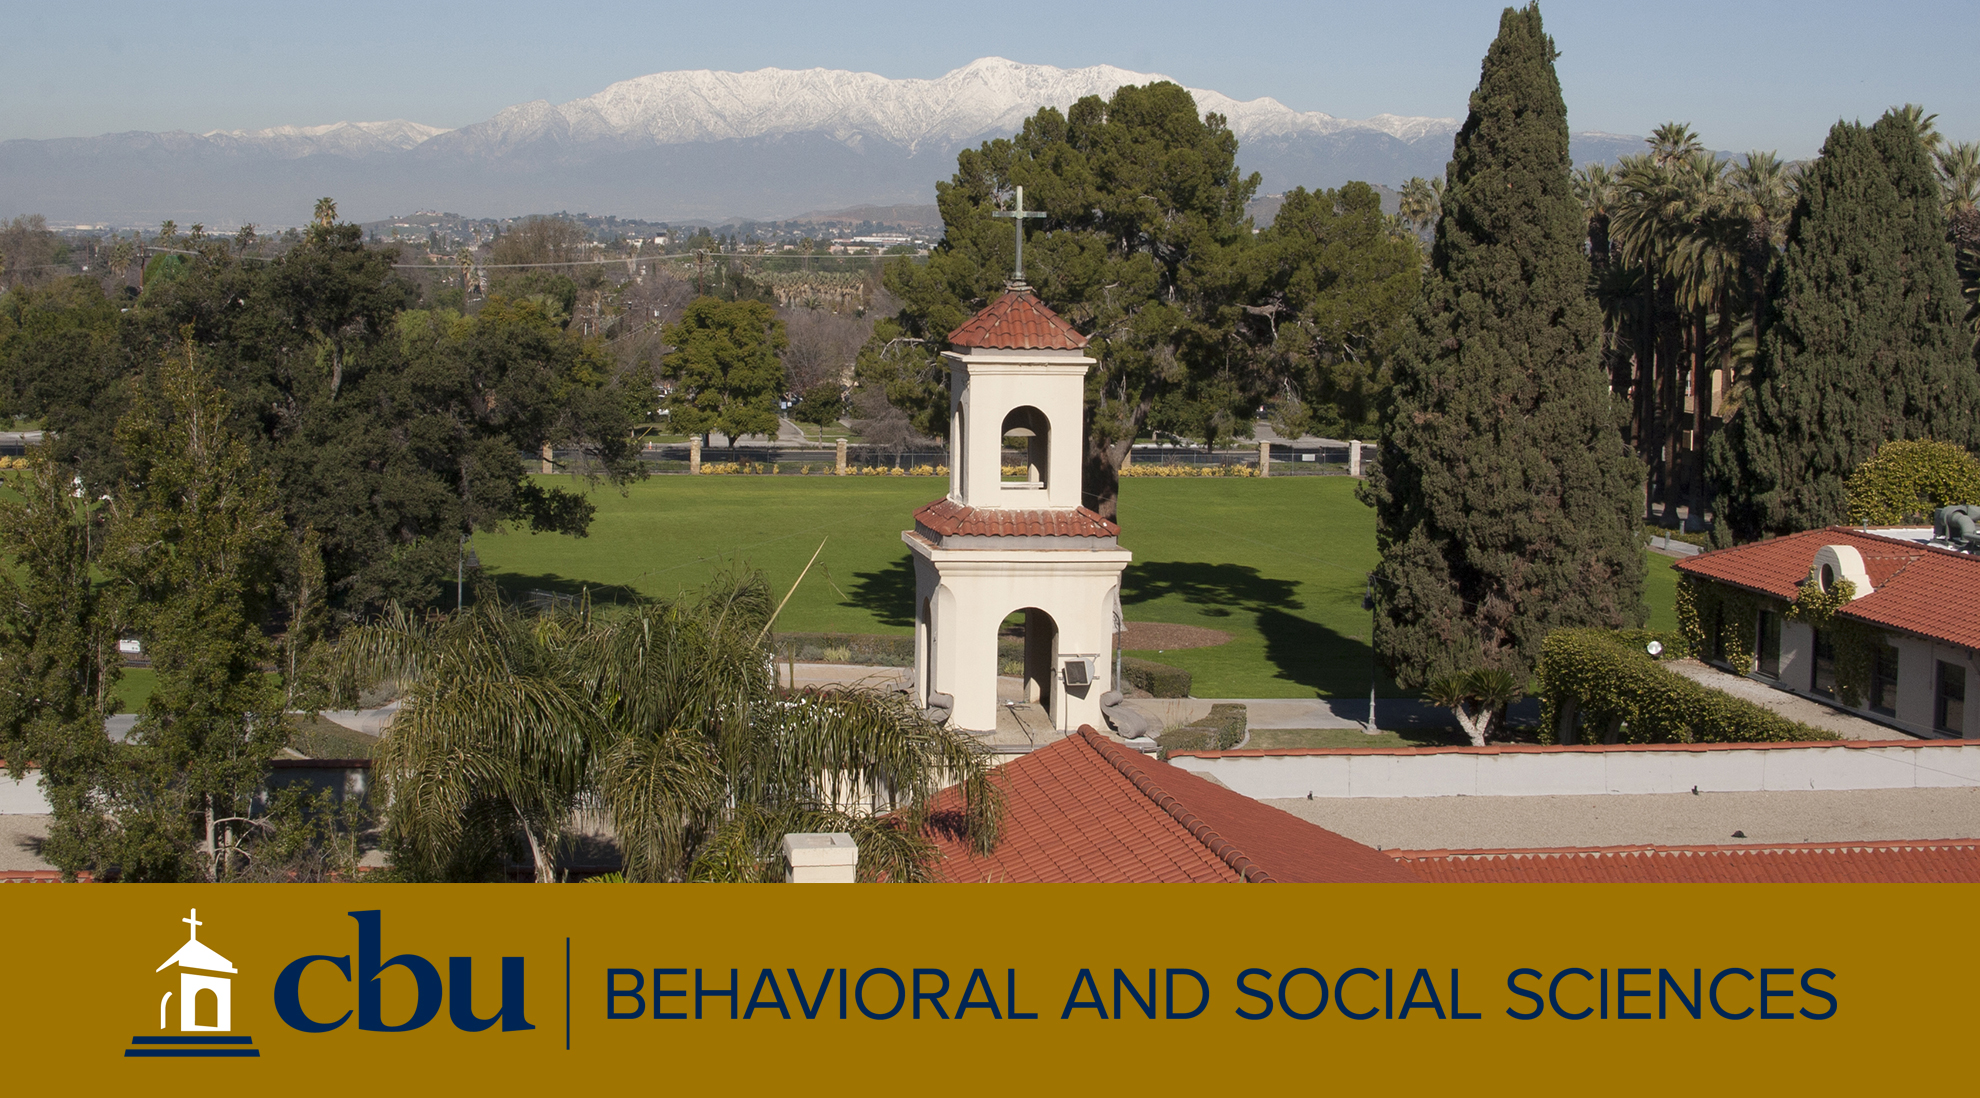 Behavioral and Social Sciences at CBU